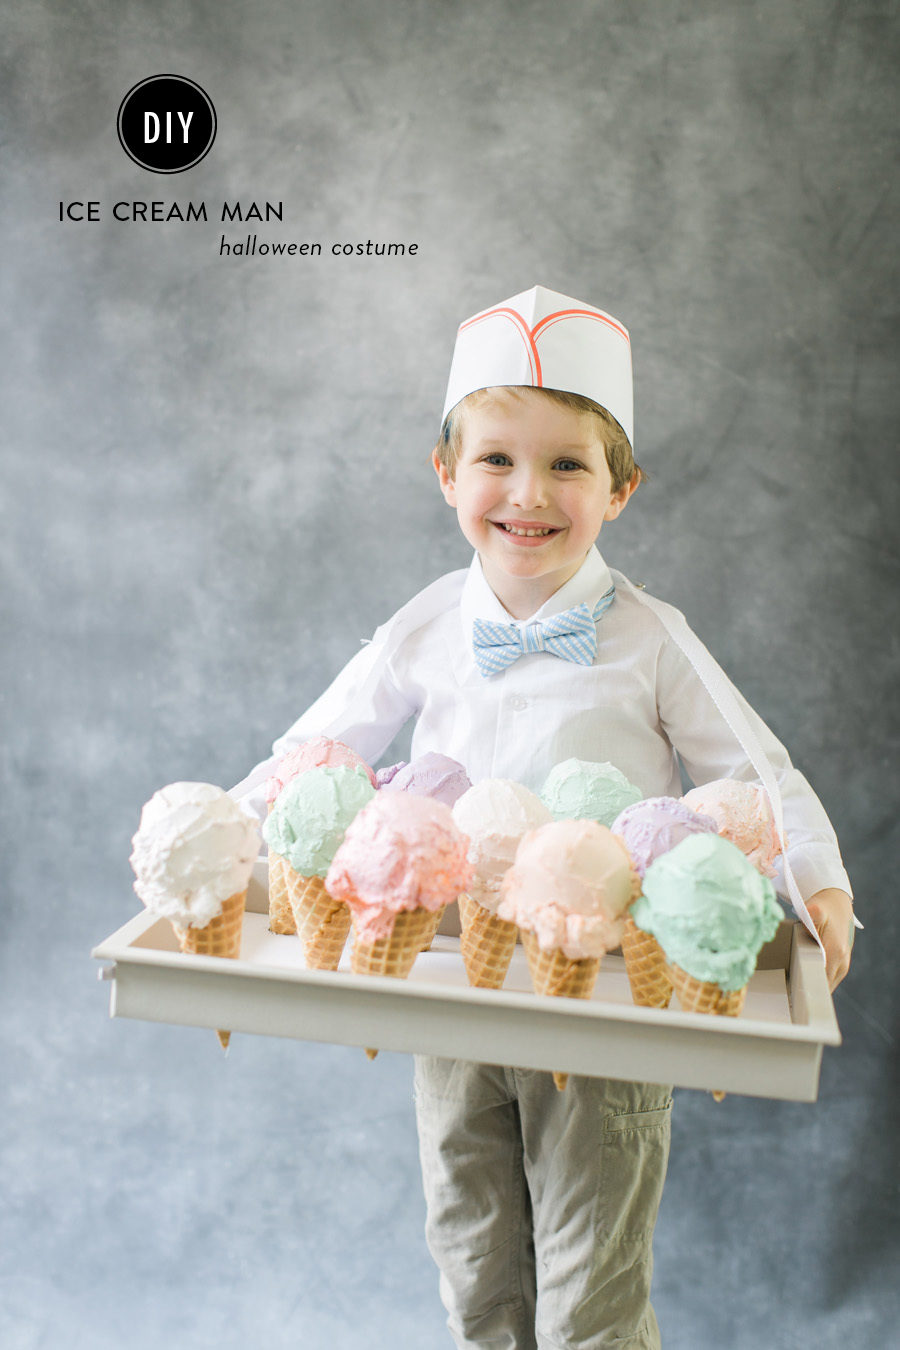 with spackle styrofoam a little paint and a paper hat your kiddo will be serving up delicious treats come halloween and for even more costume ideas